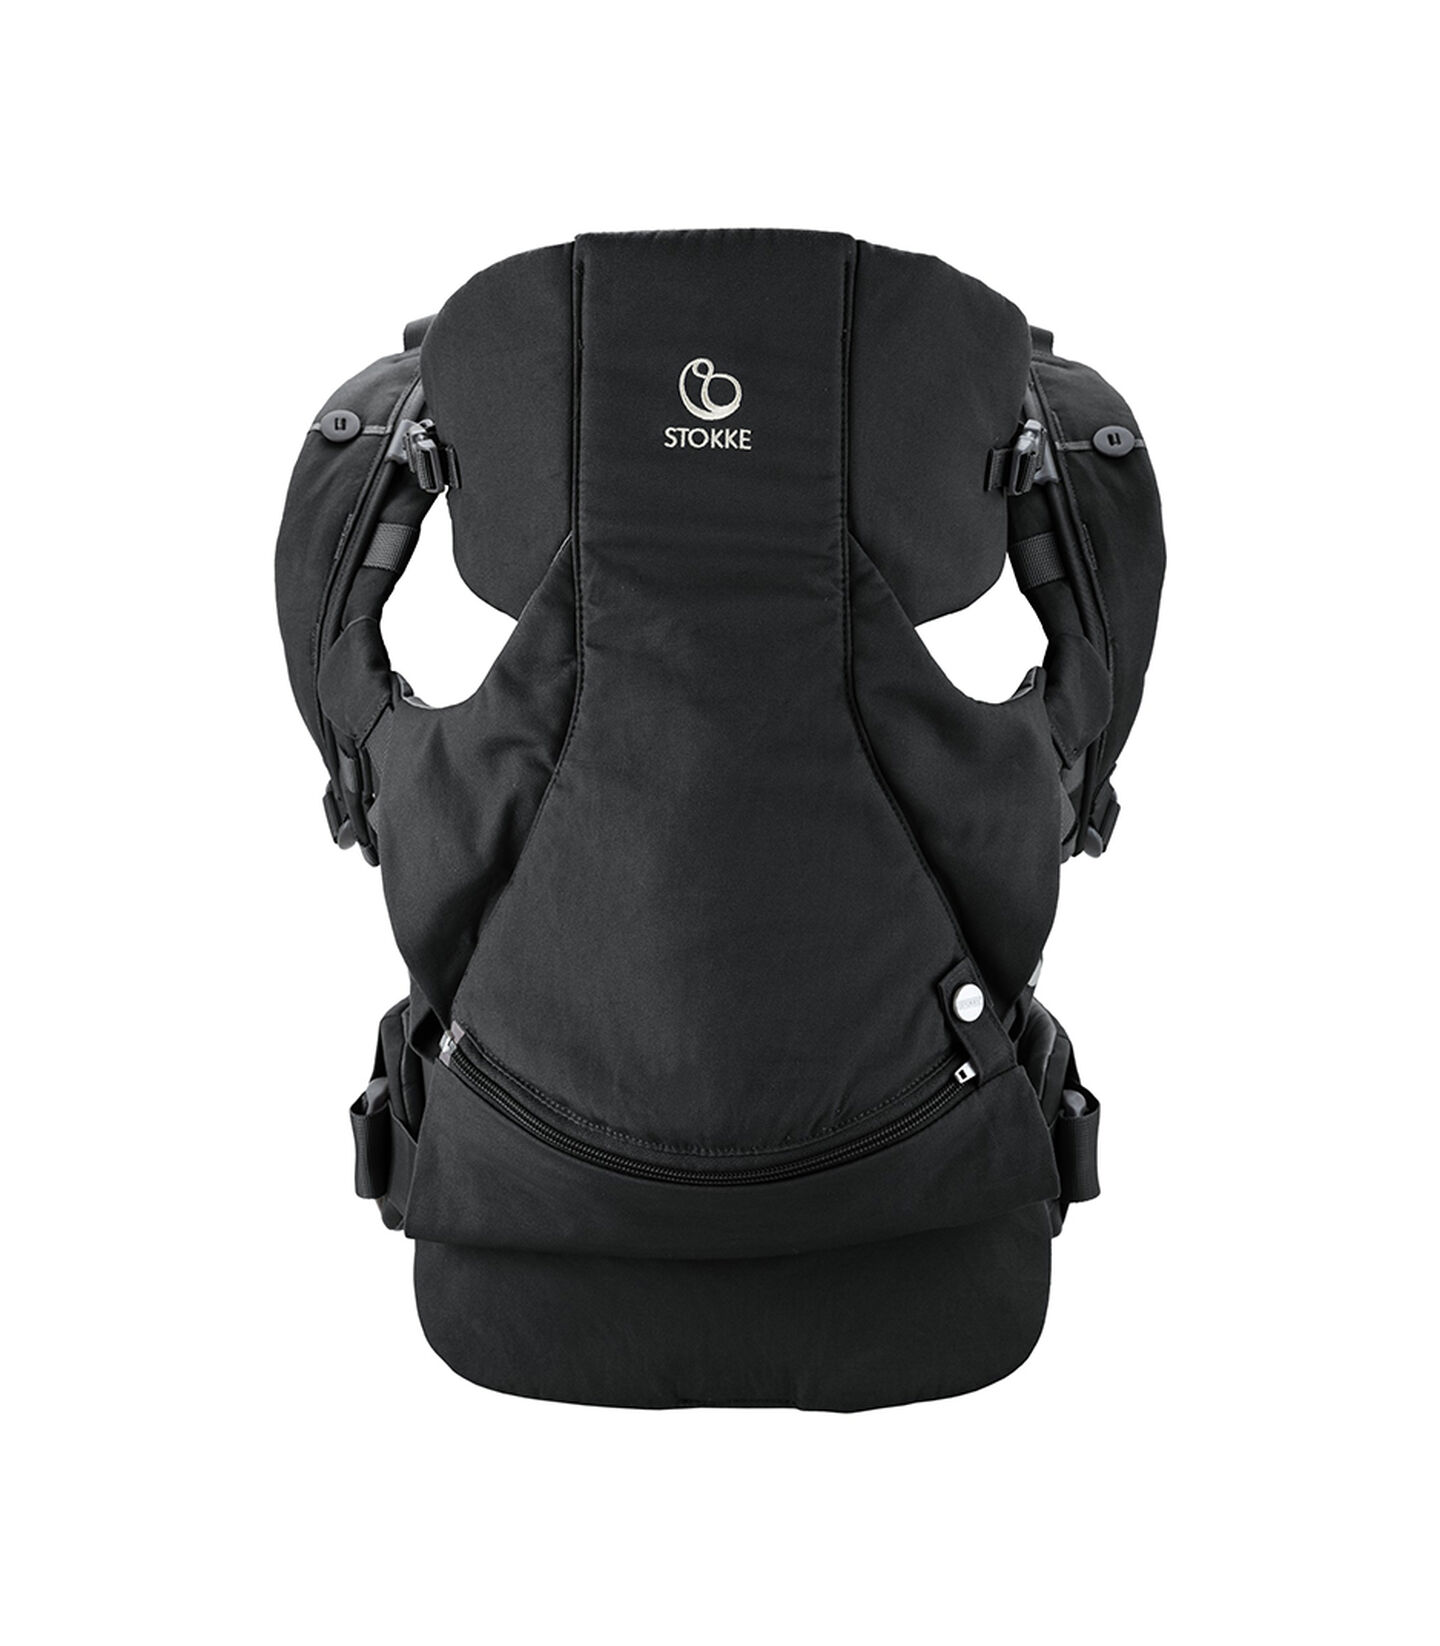 Stokke® MyCarrier™ Mochila frontal y dorsal Negro, Negro, mainview view 2